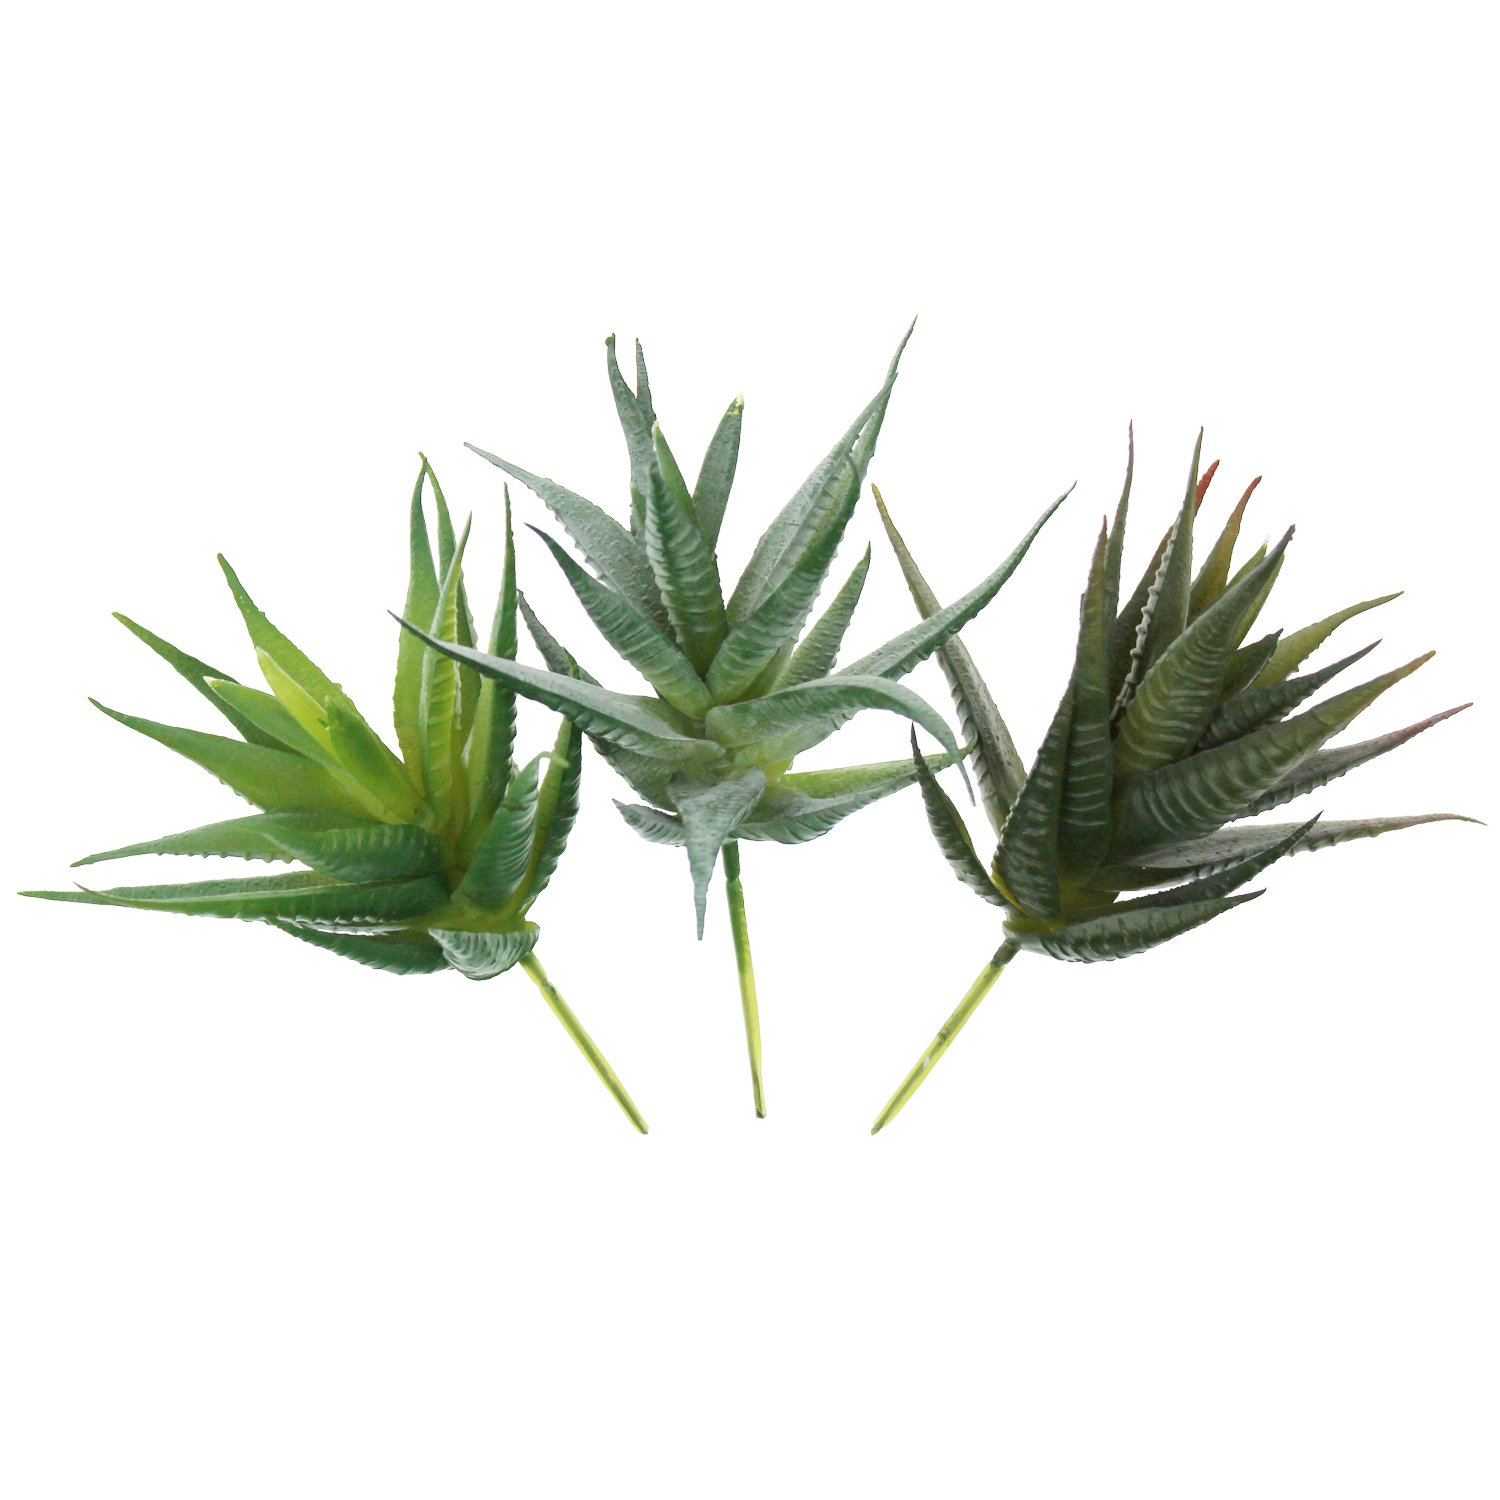 LJY 3 Pieces Faux Aloe Realistic Artificial Succulent Greenhouse Small Plants Unpotted for Home Garden Decoration, Color Assorted